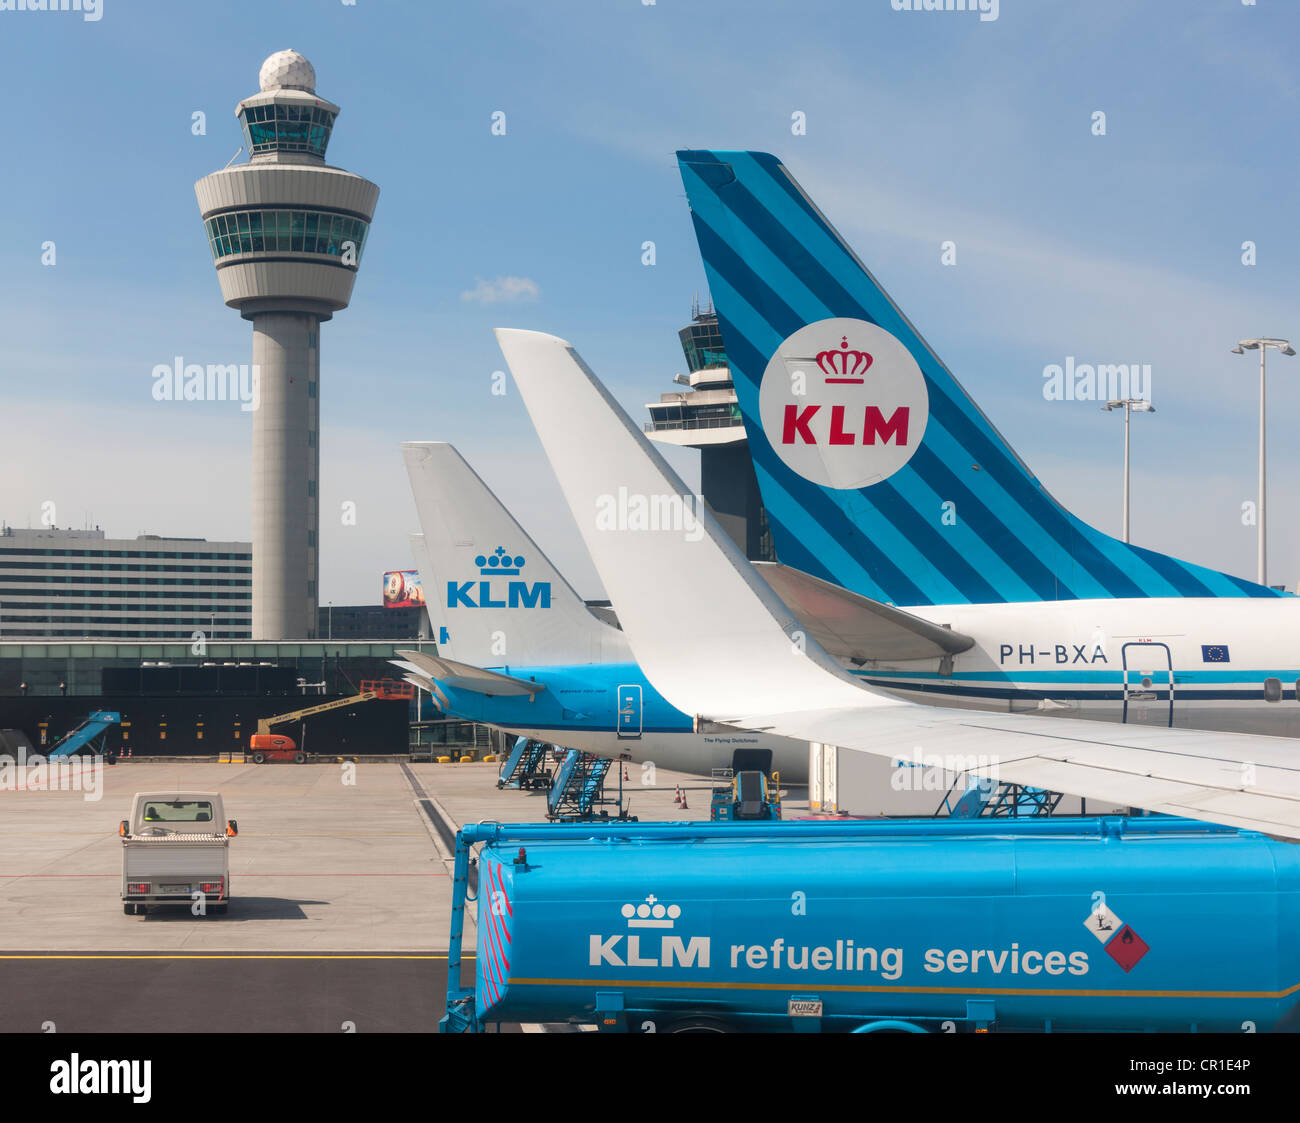 Amsterdam Schiphol Airport Air Traffic Control Tower with Royal KLM planes refueling at gate. Retro style colors - Stock Image